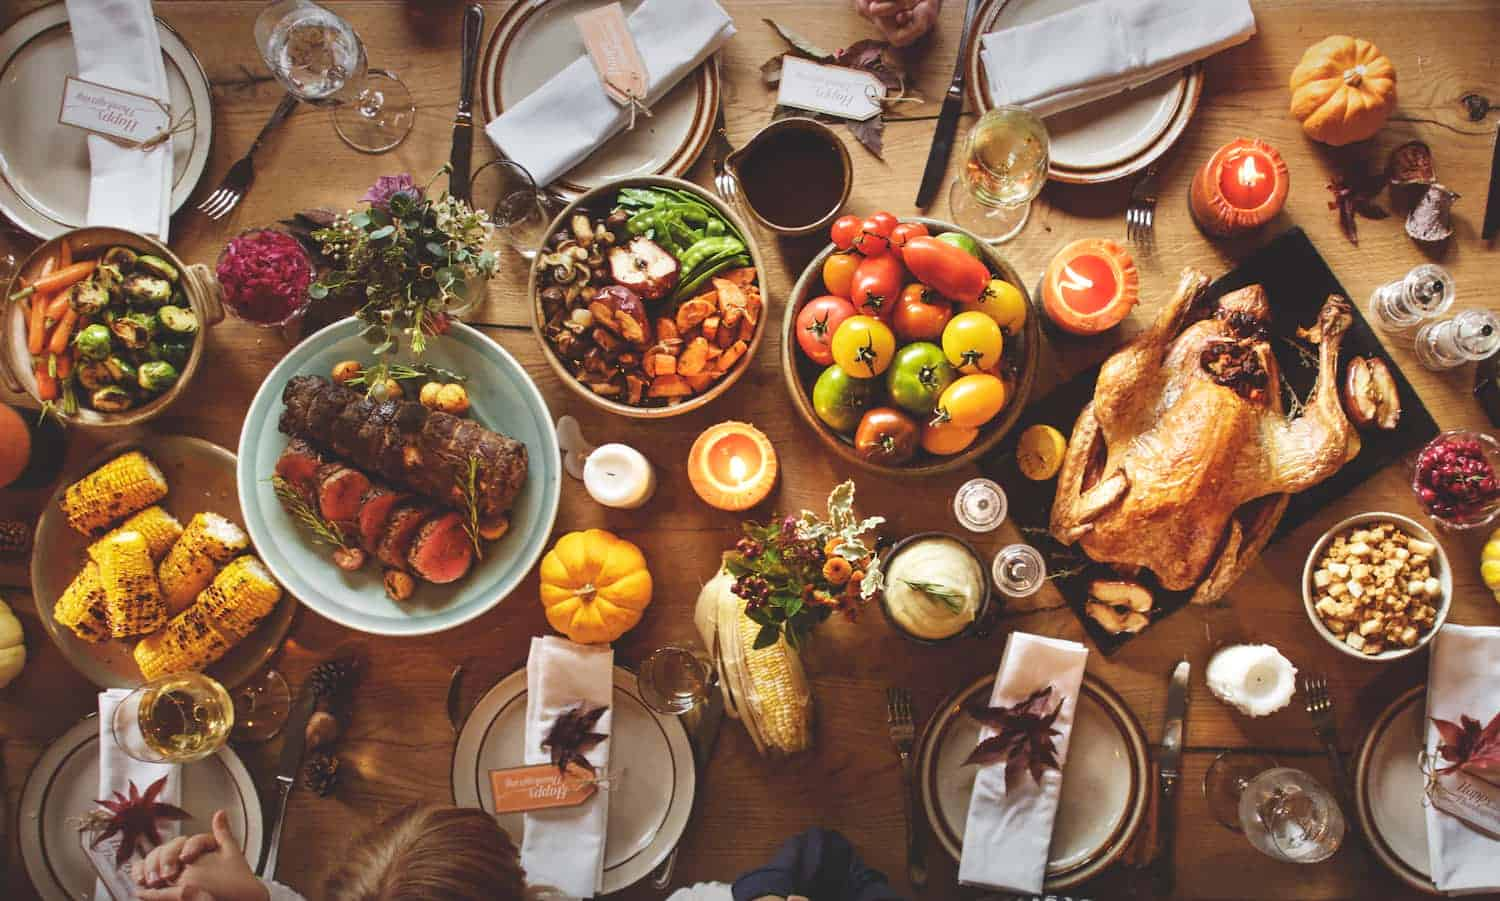 Changing American consumer preferences for more environmentally friendly alternatives to turkey are changing the tradition of Thanksgiving.